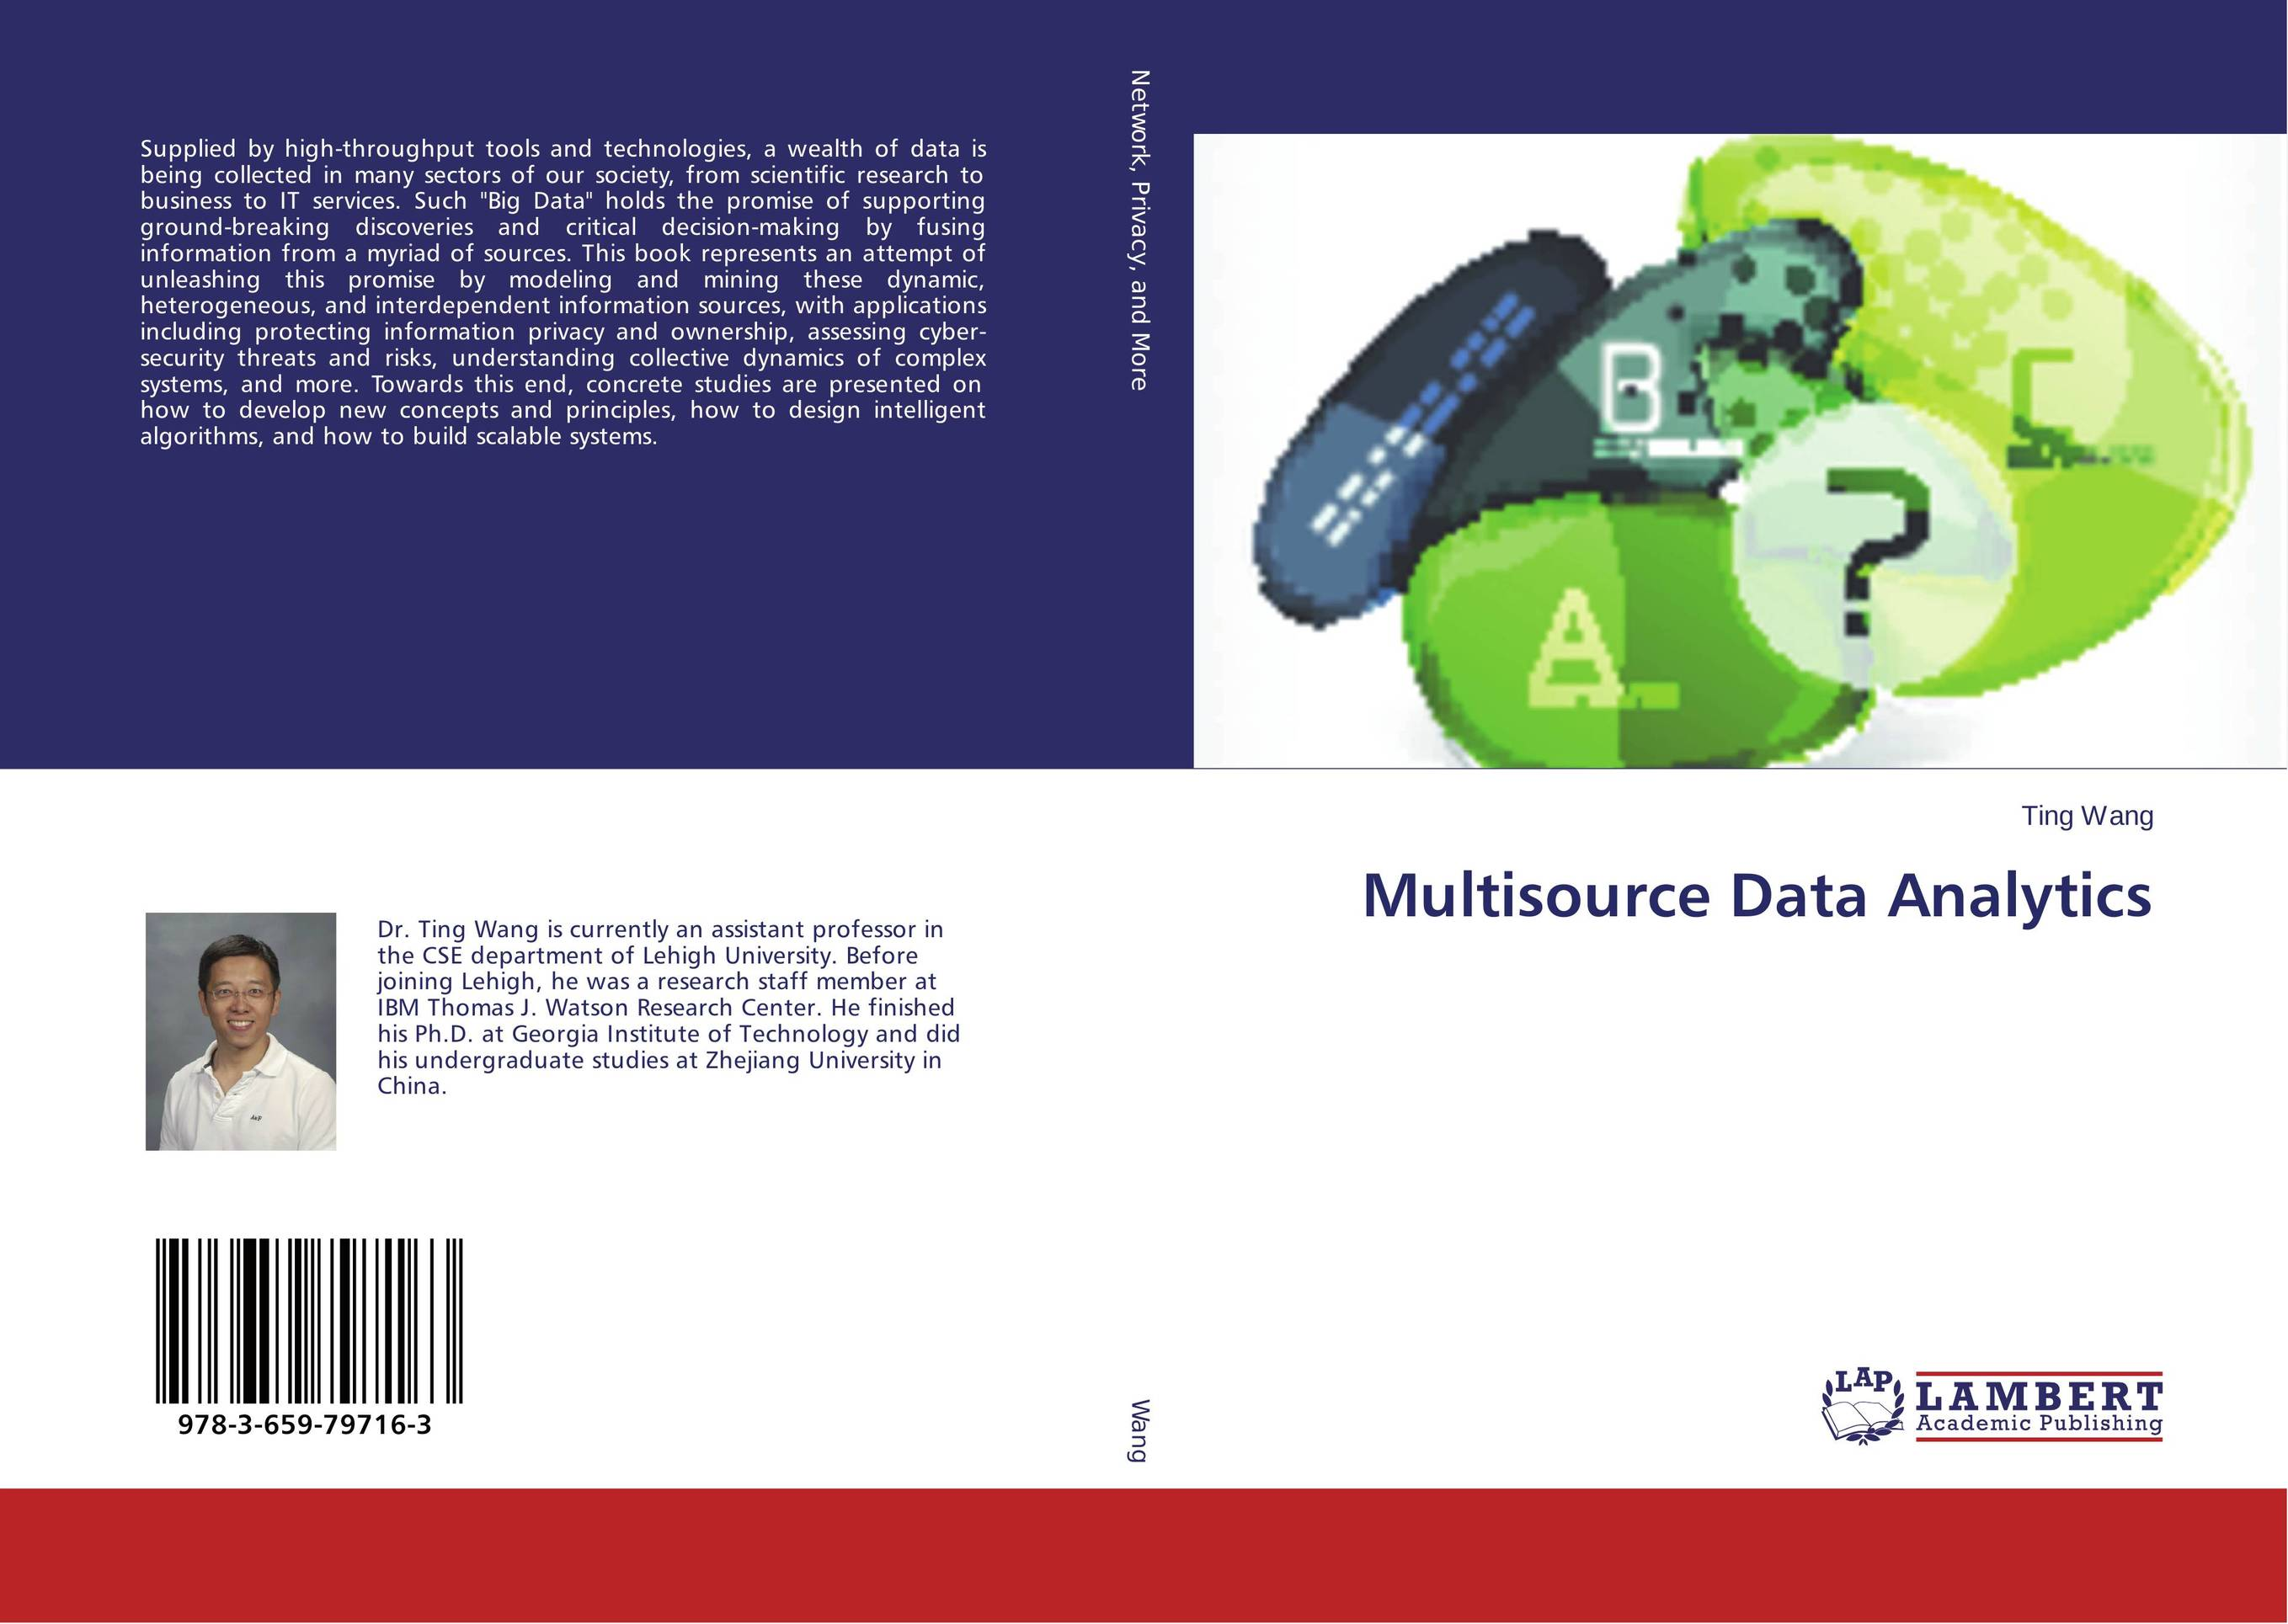 Multisource Data Analytics information sources and services